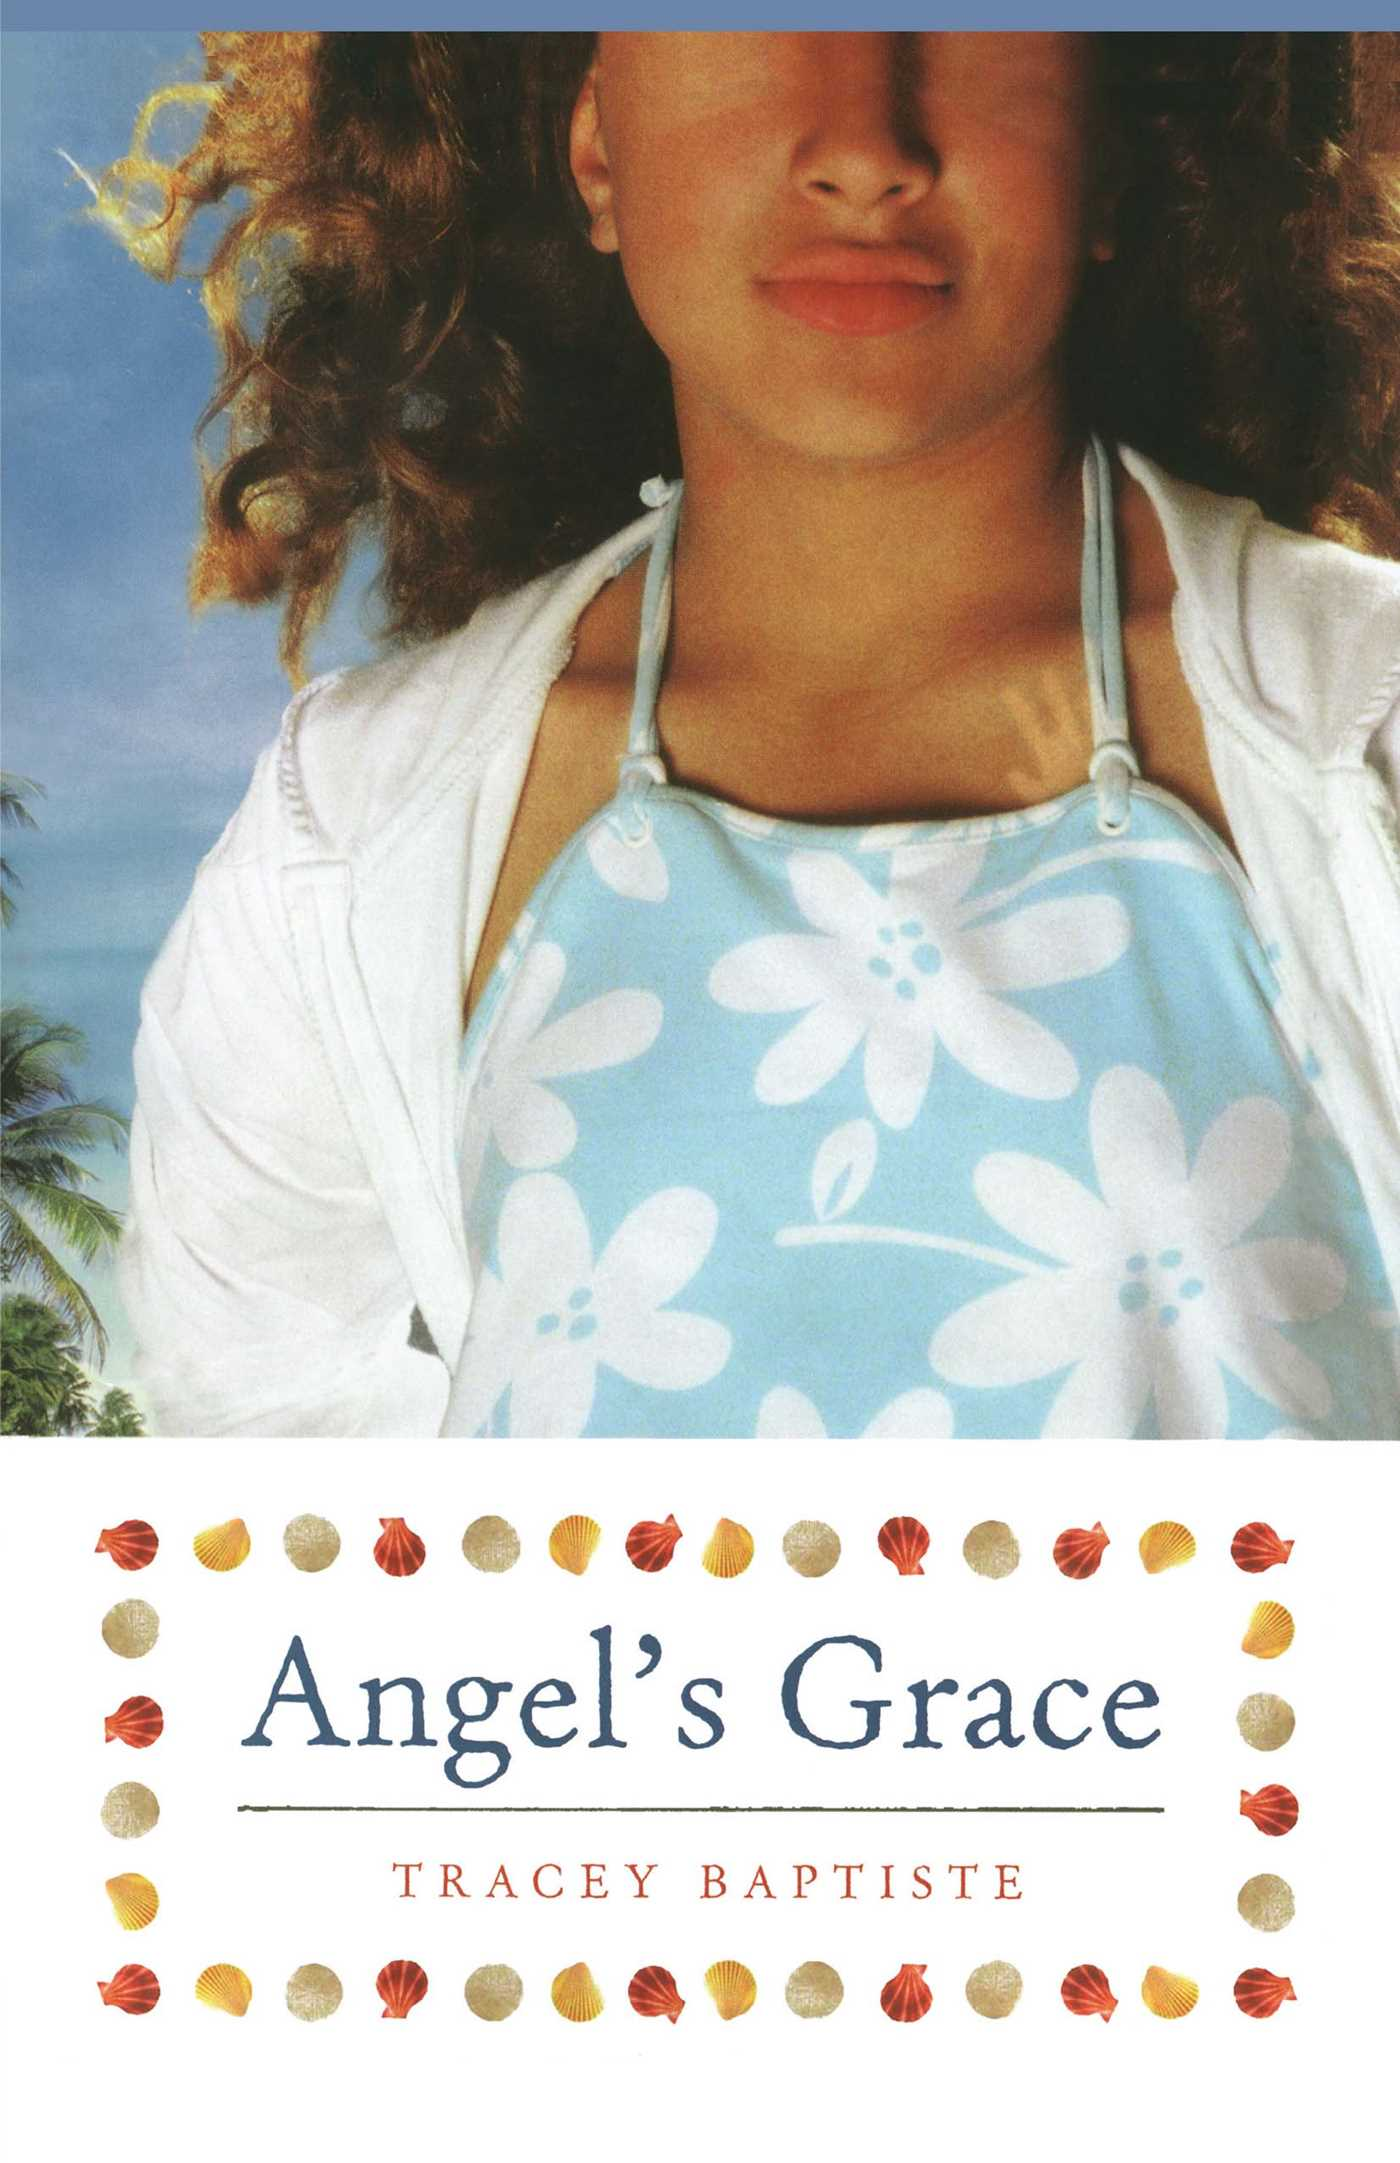 Angels-grace-9781416995371_hr